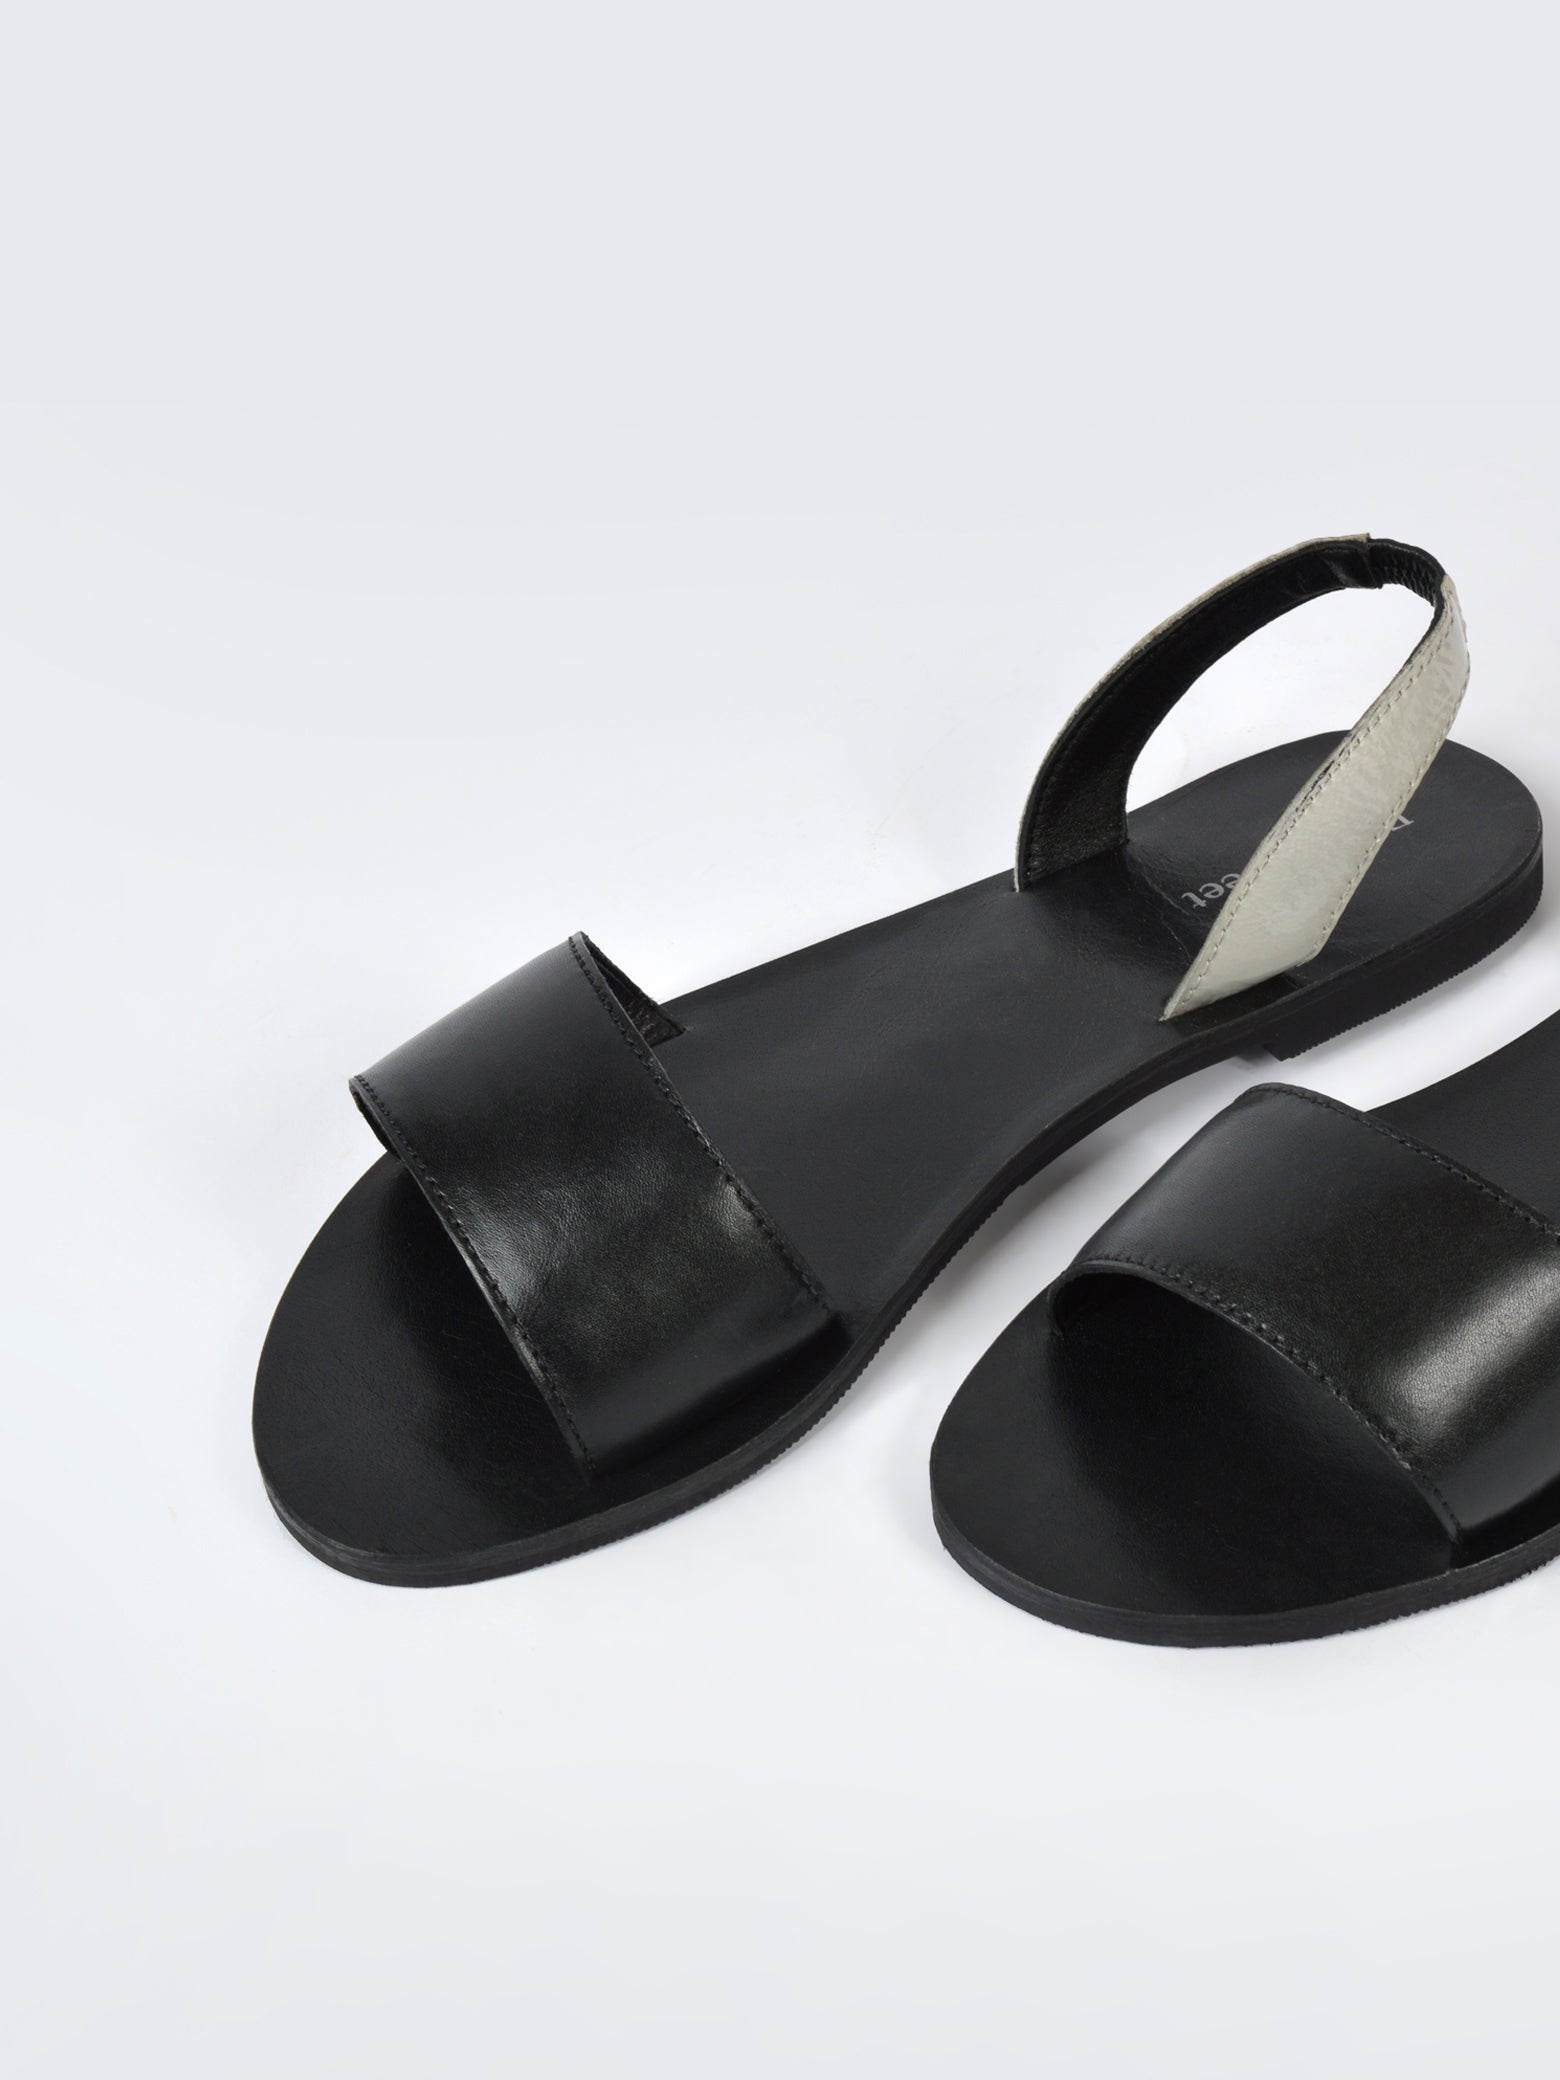 Leather Strappy Flat Sandals - Black